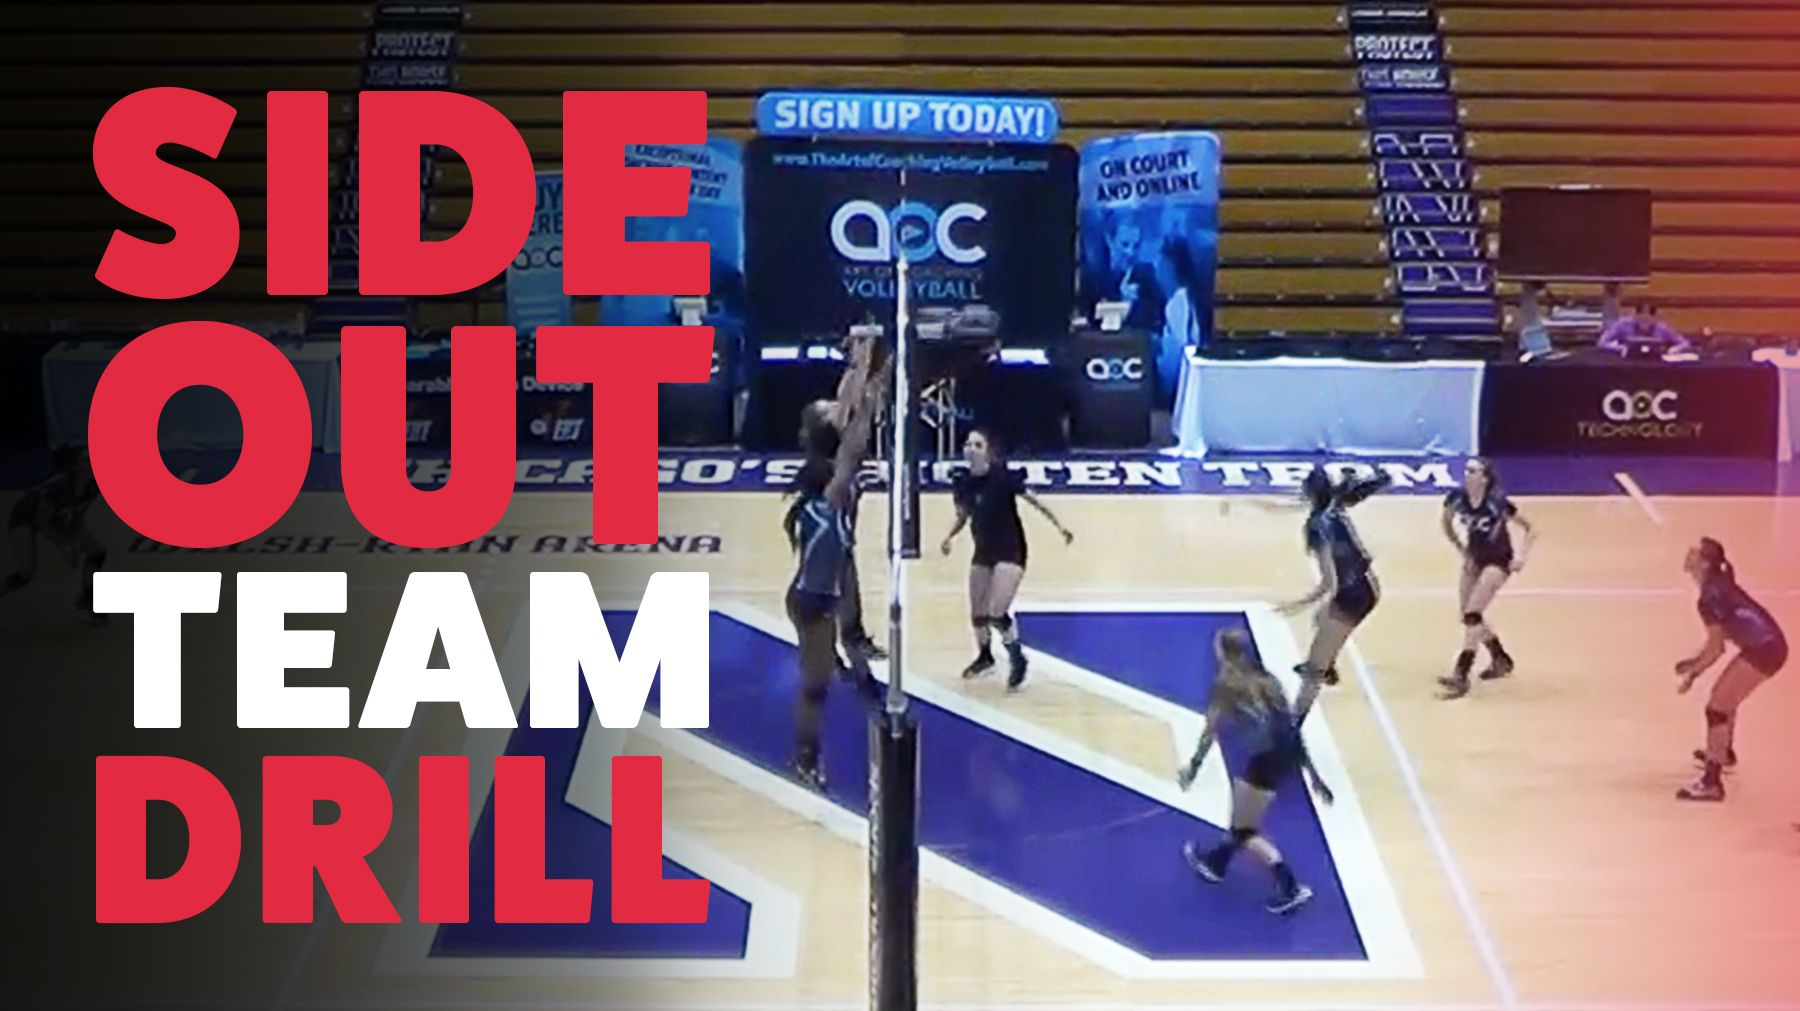 Sideout Team Drill With Kevin Hambly The Art Of Coaching Volleyball Coaching Volleyball Drill Volleyball Drills